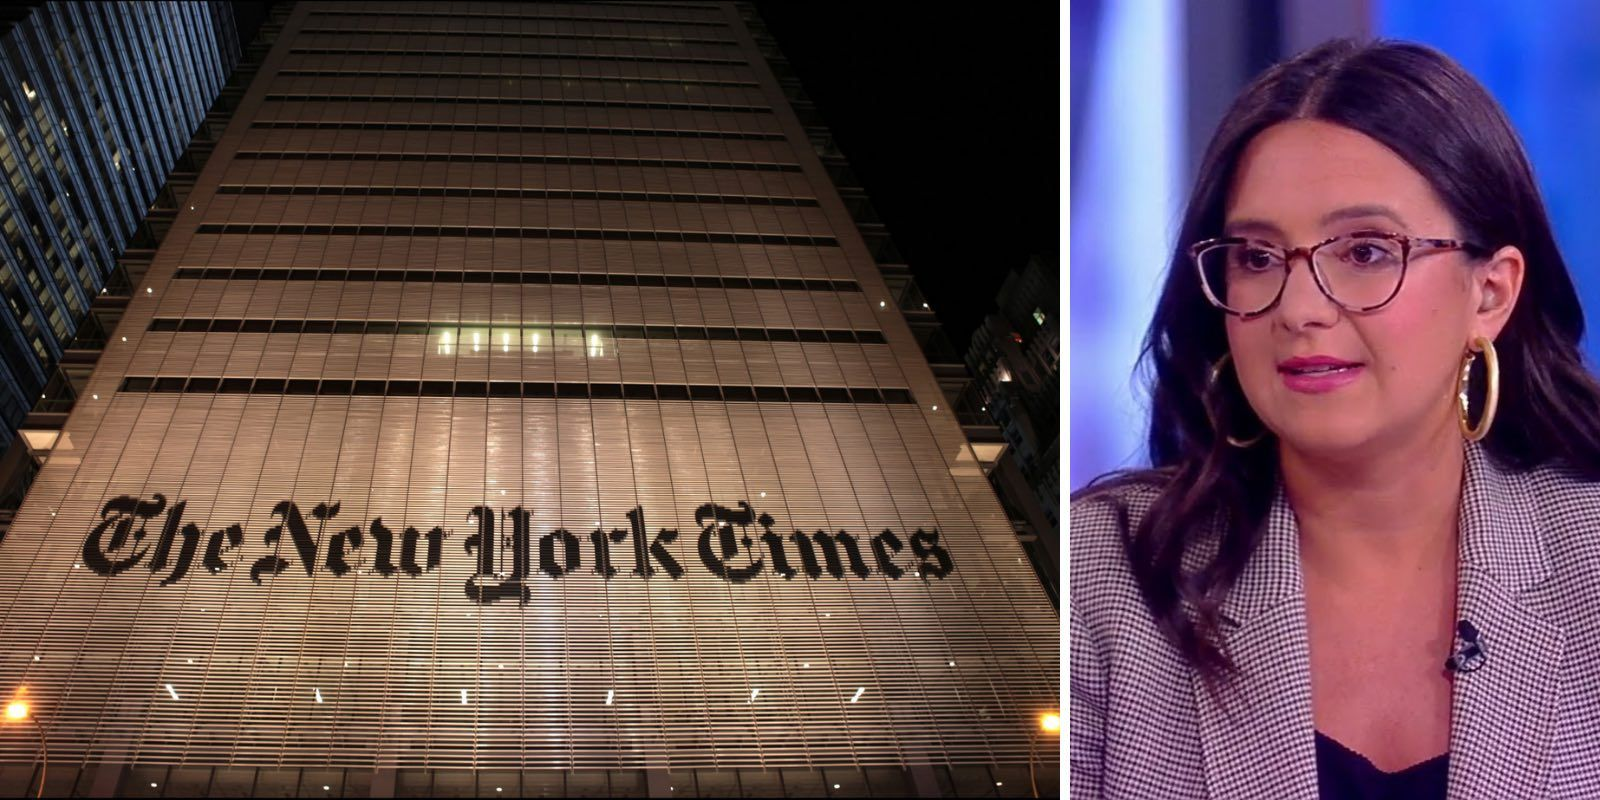 The demise of The New York Times and the decline of truth